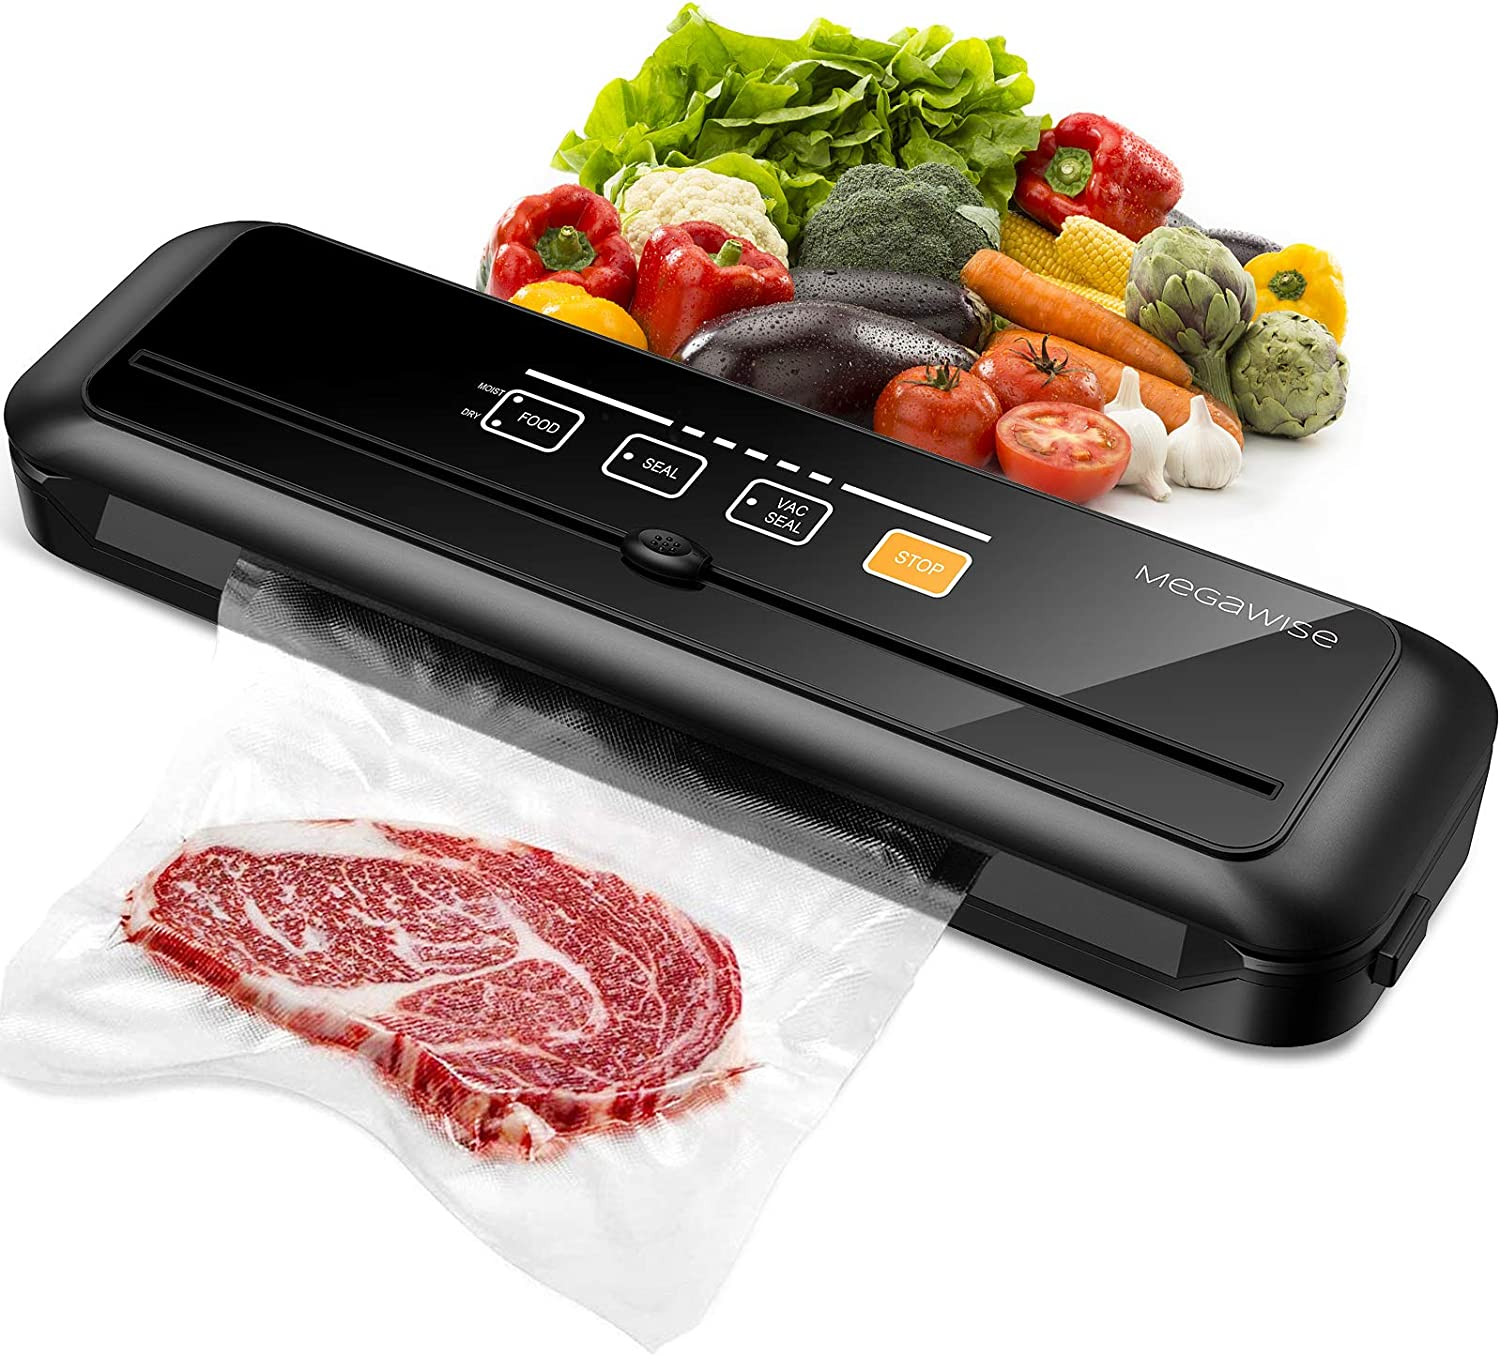 MEGAWISE 80kPa Vacuum Sealer, One-Touch Automatic Food Saver with Dry Moist Fresh Modes, Portable Vacuum Sealing Machine with 10 Vacuum Bags & Cutter